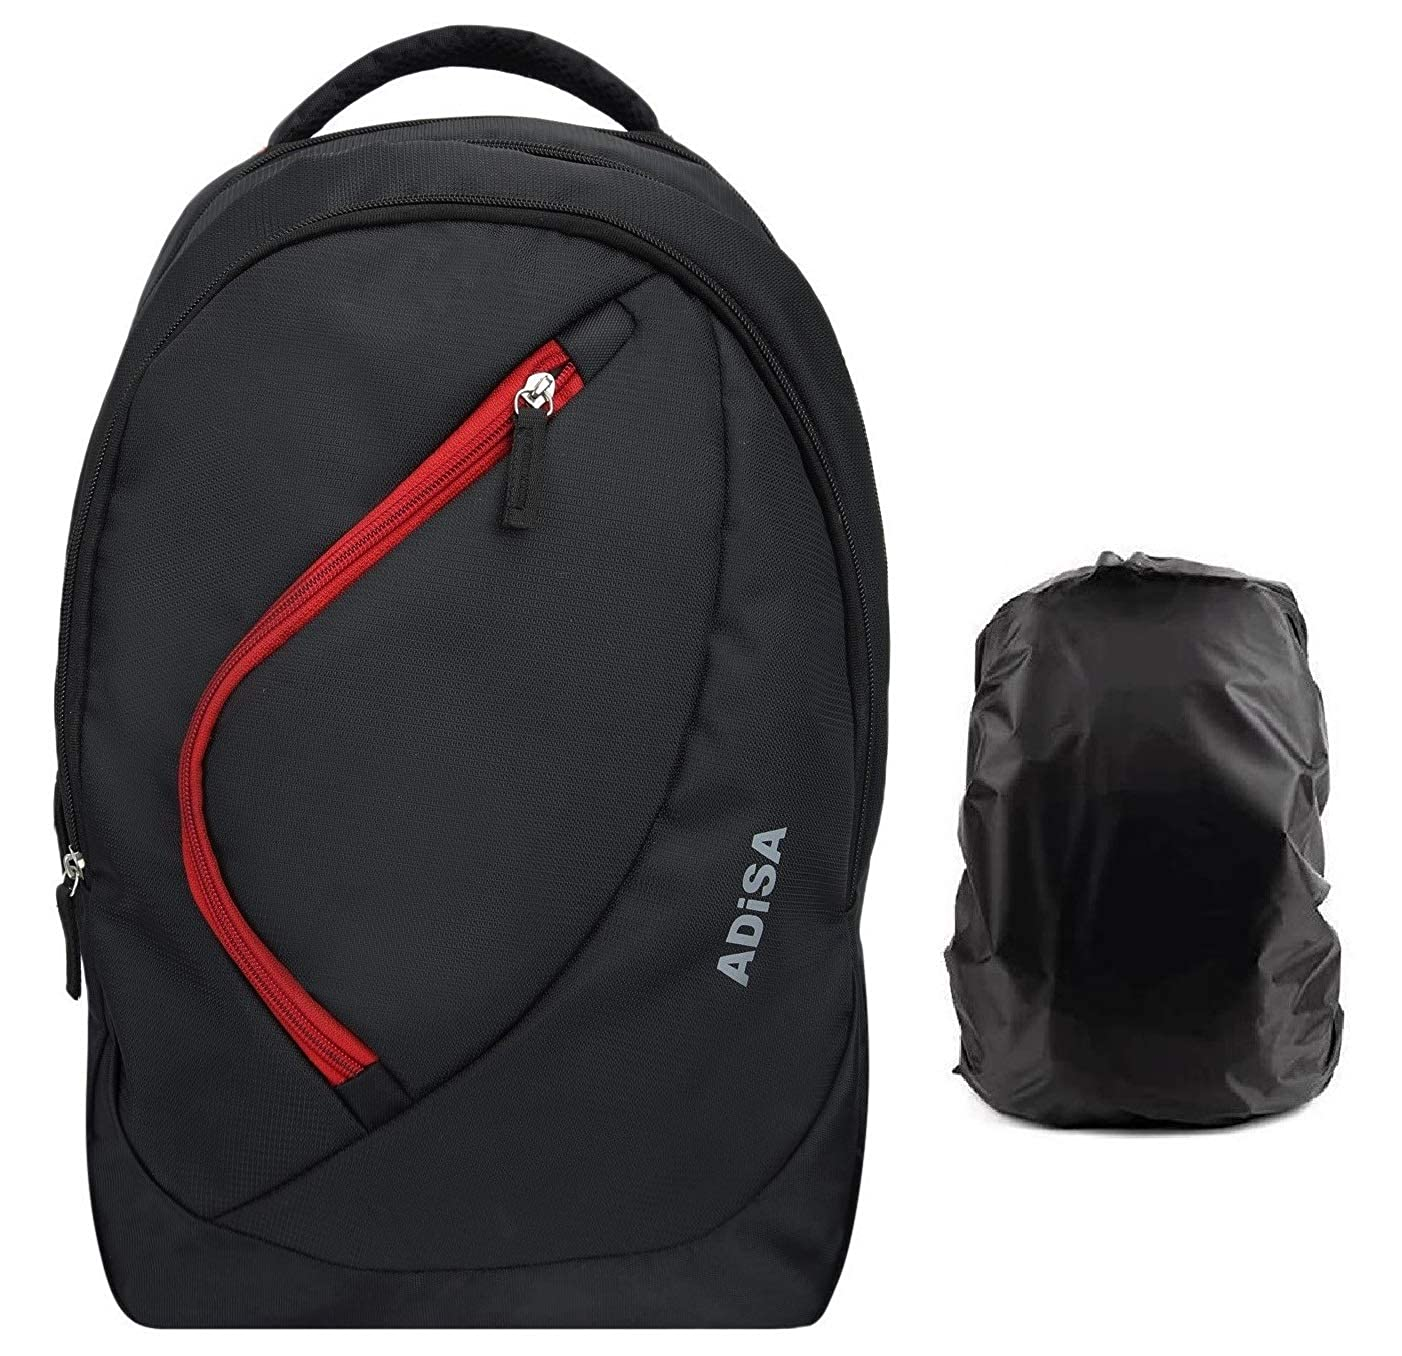 ADISA BP010 Light Weight 35 Ltrs Casual Backpack with rain Cover